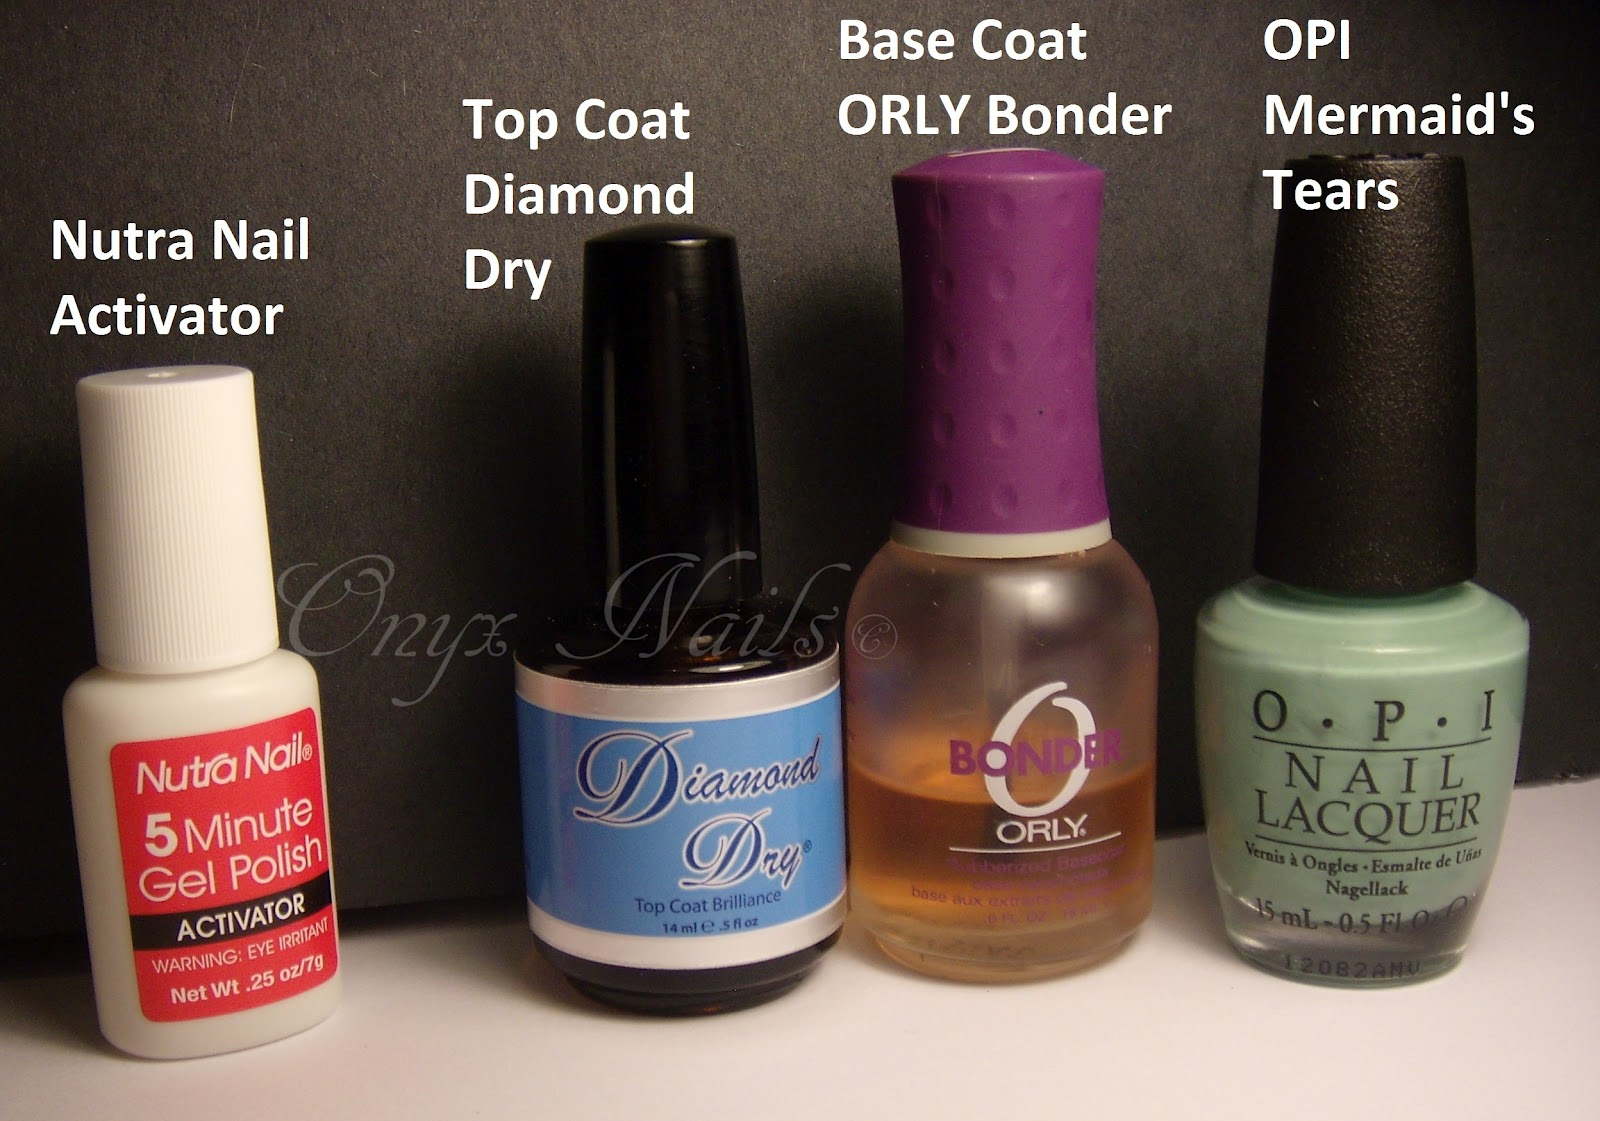 Onyx Nails: Longer Lasting Manicures